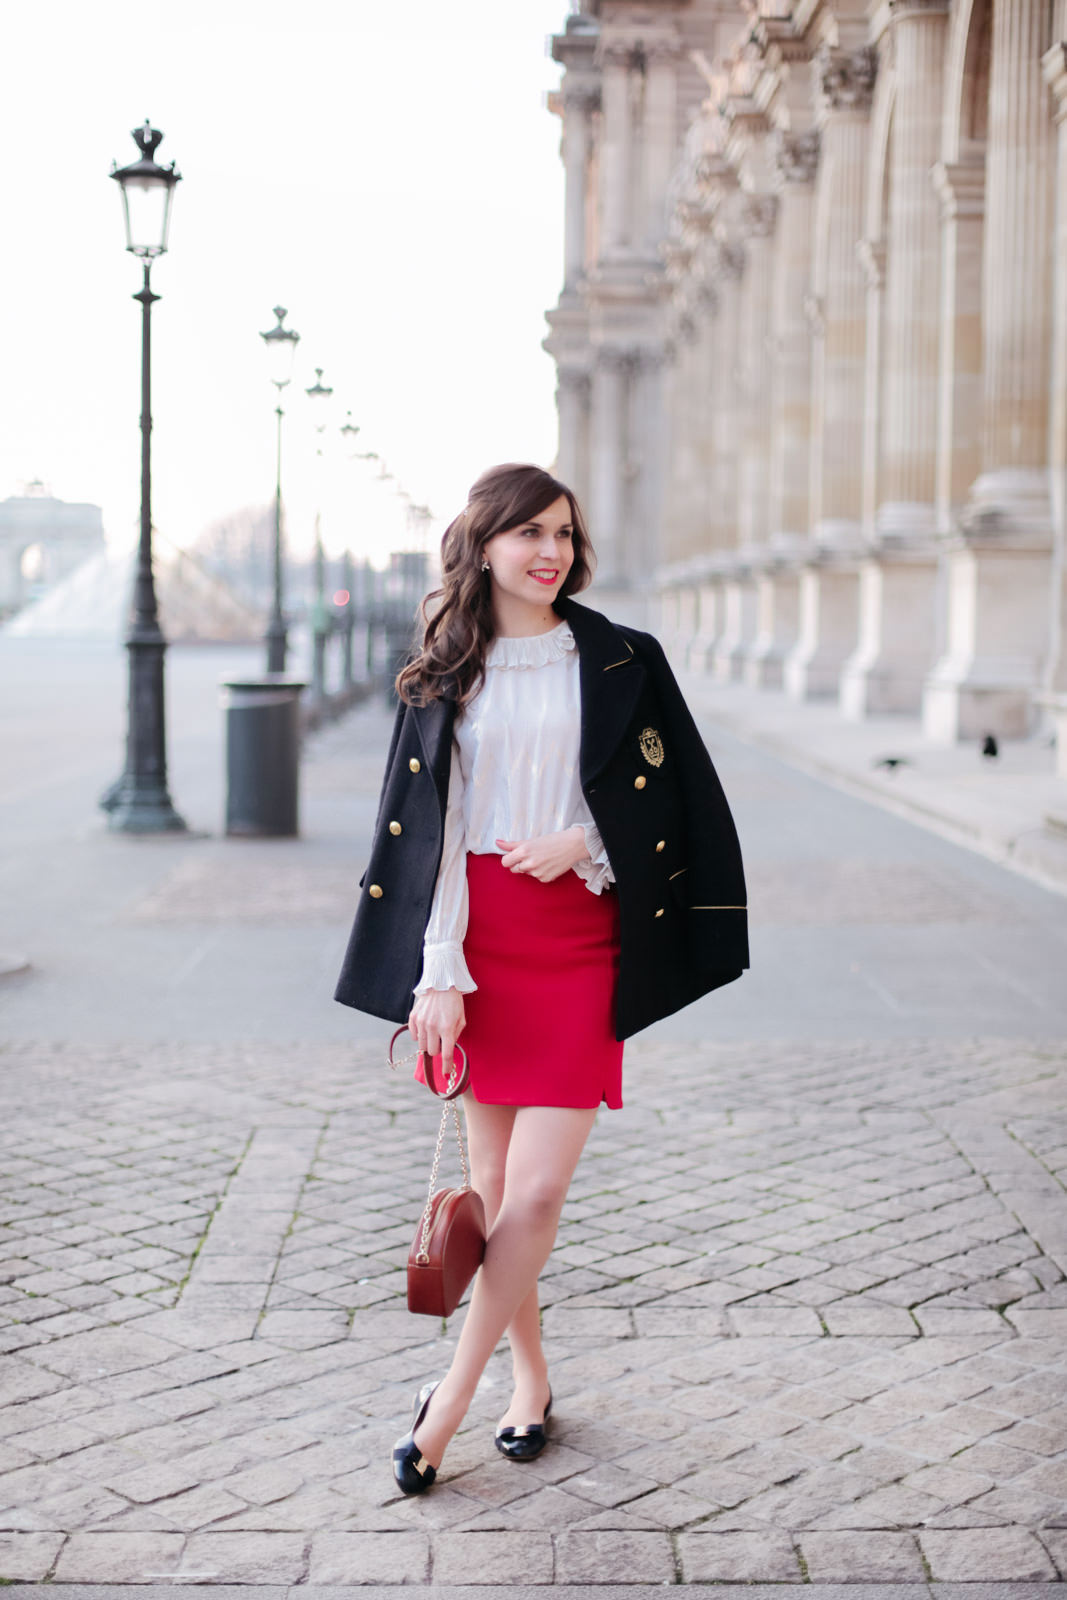 Blog-Mode-And-The-City-Looks-3-tenues-3-collants-6